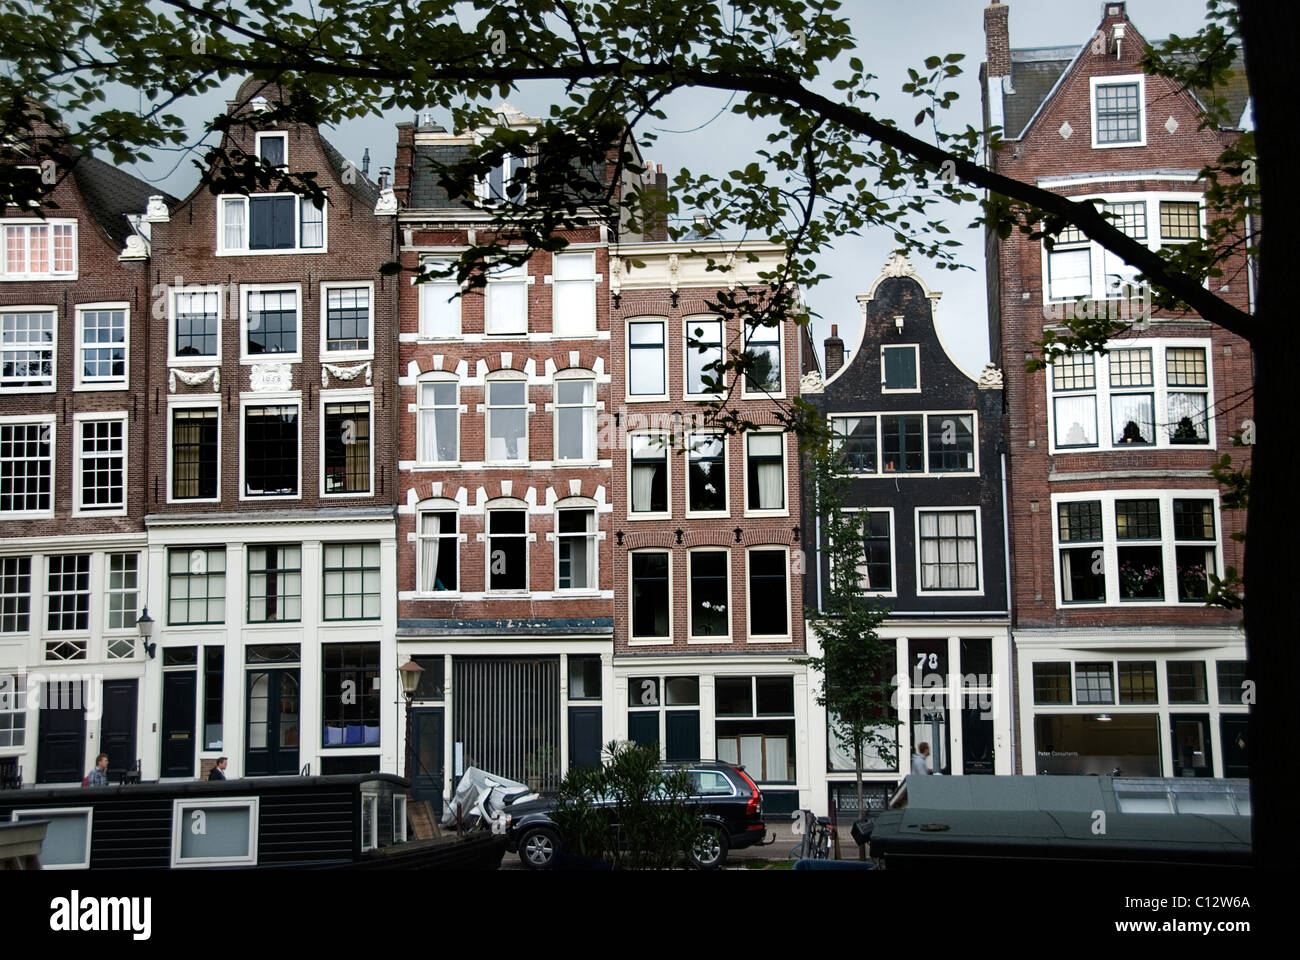 Building exteriors in Amsterdam, Holland - Stock Image